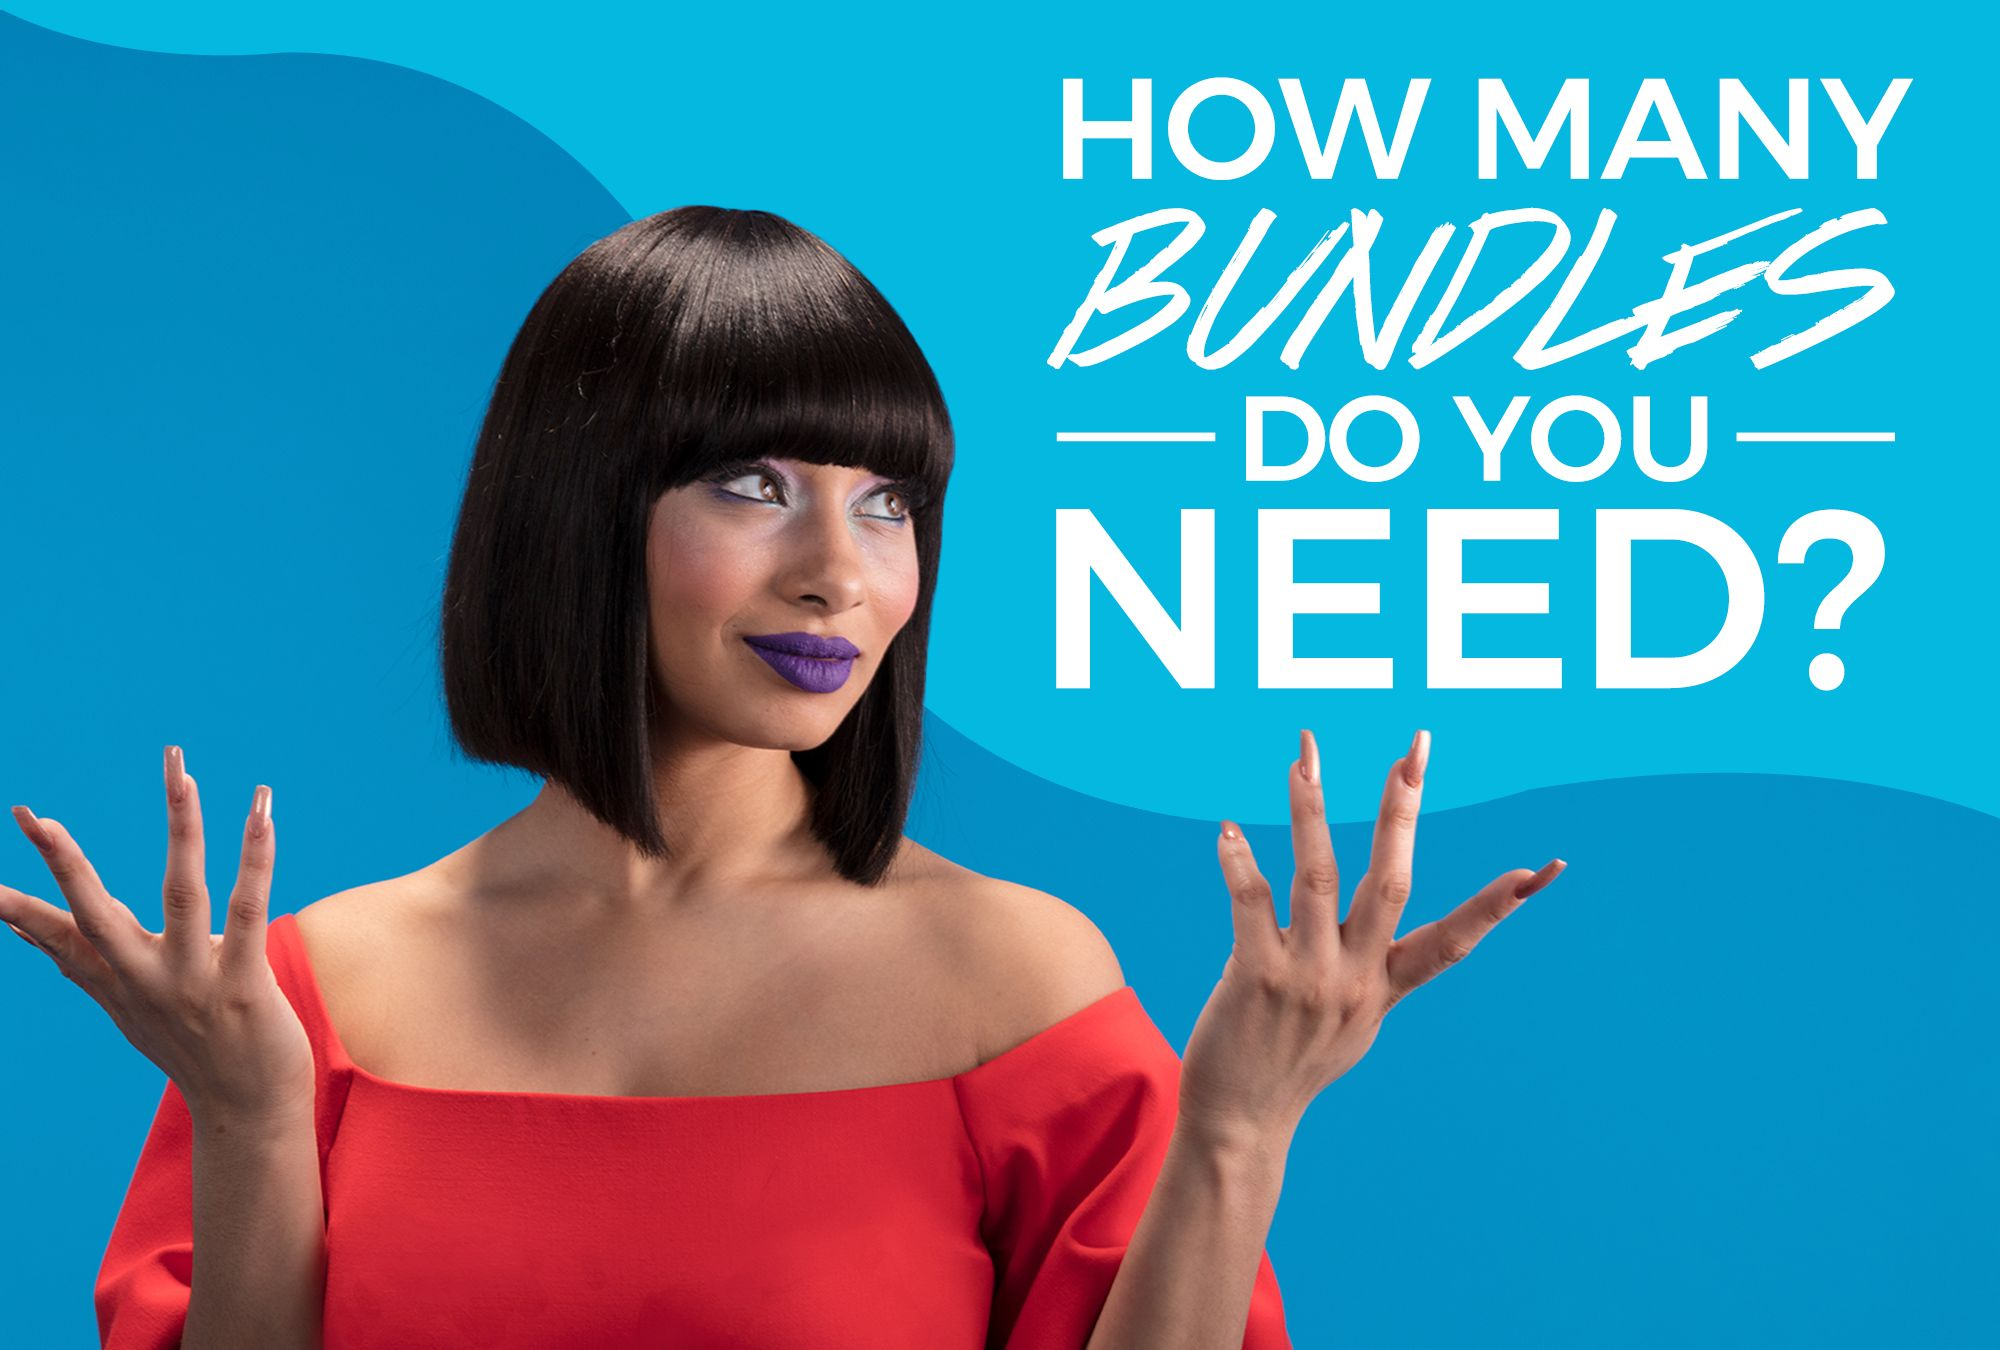 The Great Debate: How Many Bundles Do You Need?